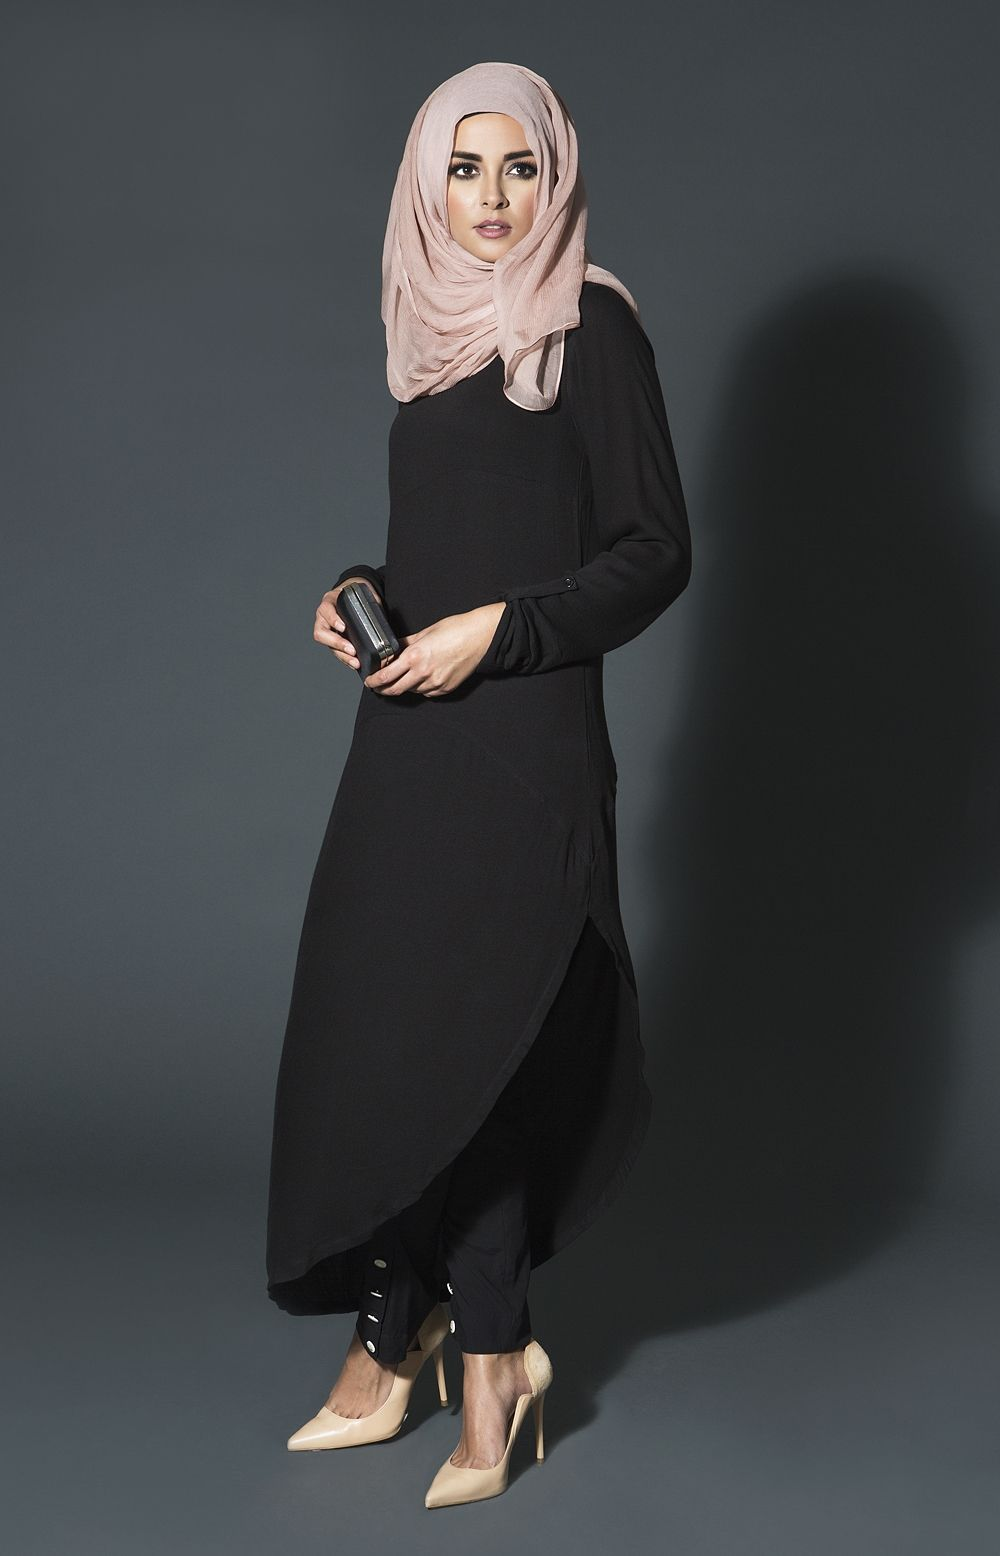 f025f85571da Aab Collection Muslim Women Fashion, Islamic Fashion, Modest Wear, Hijab  Chic, Islamic